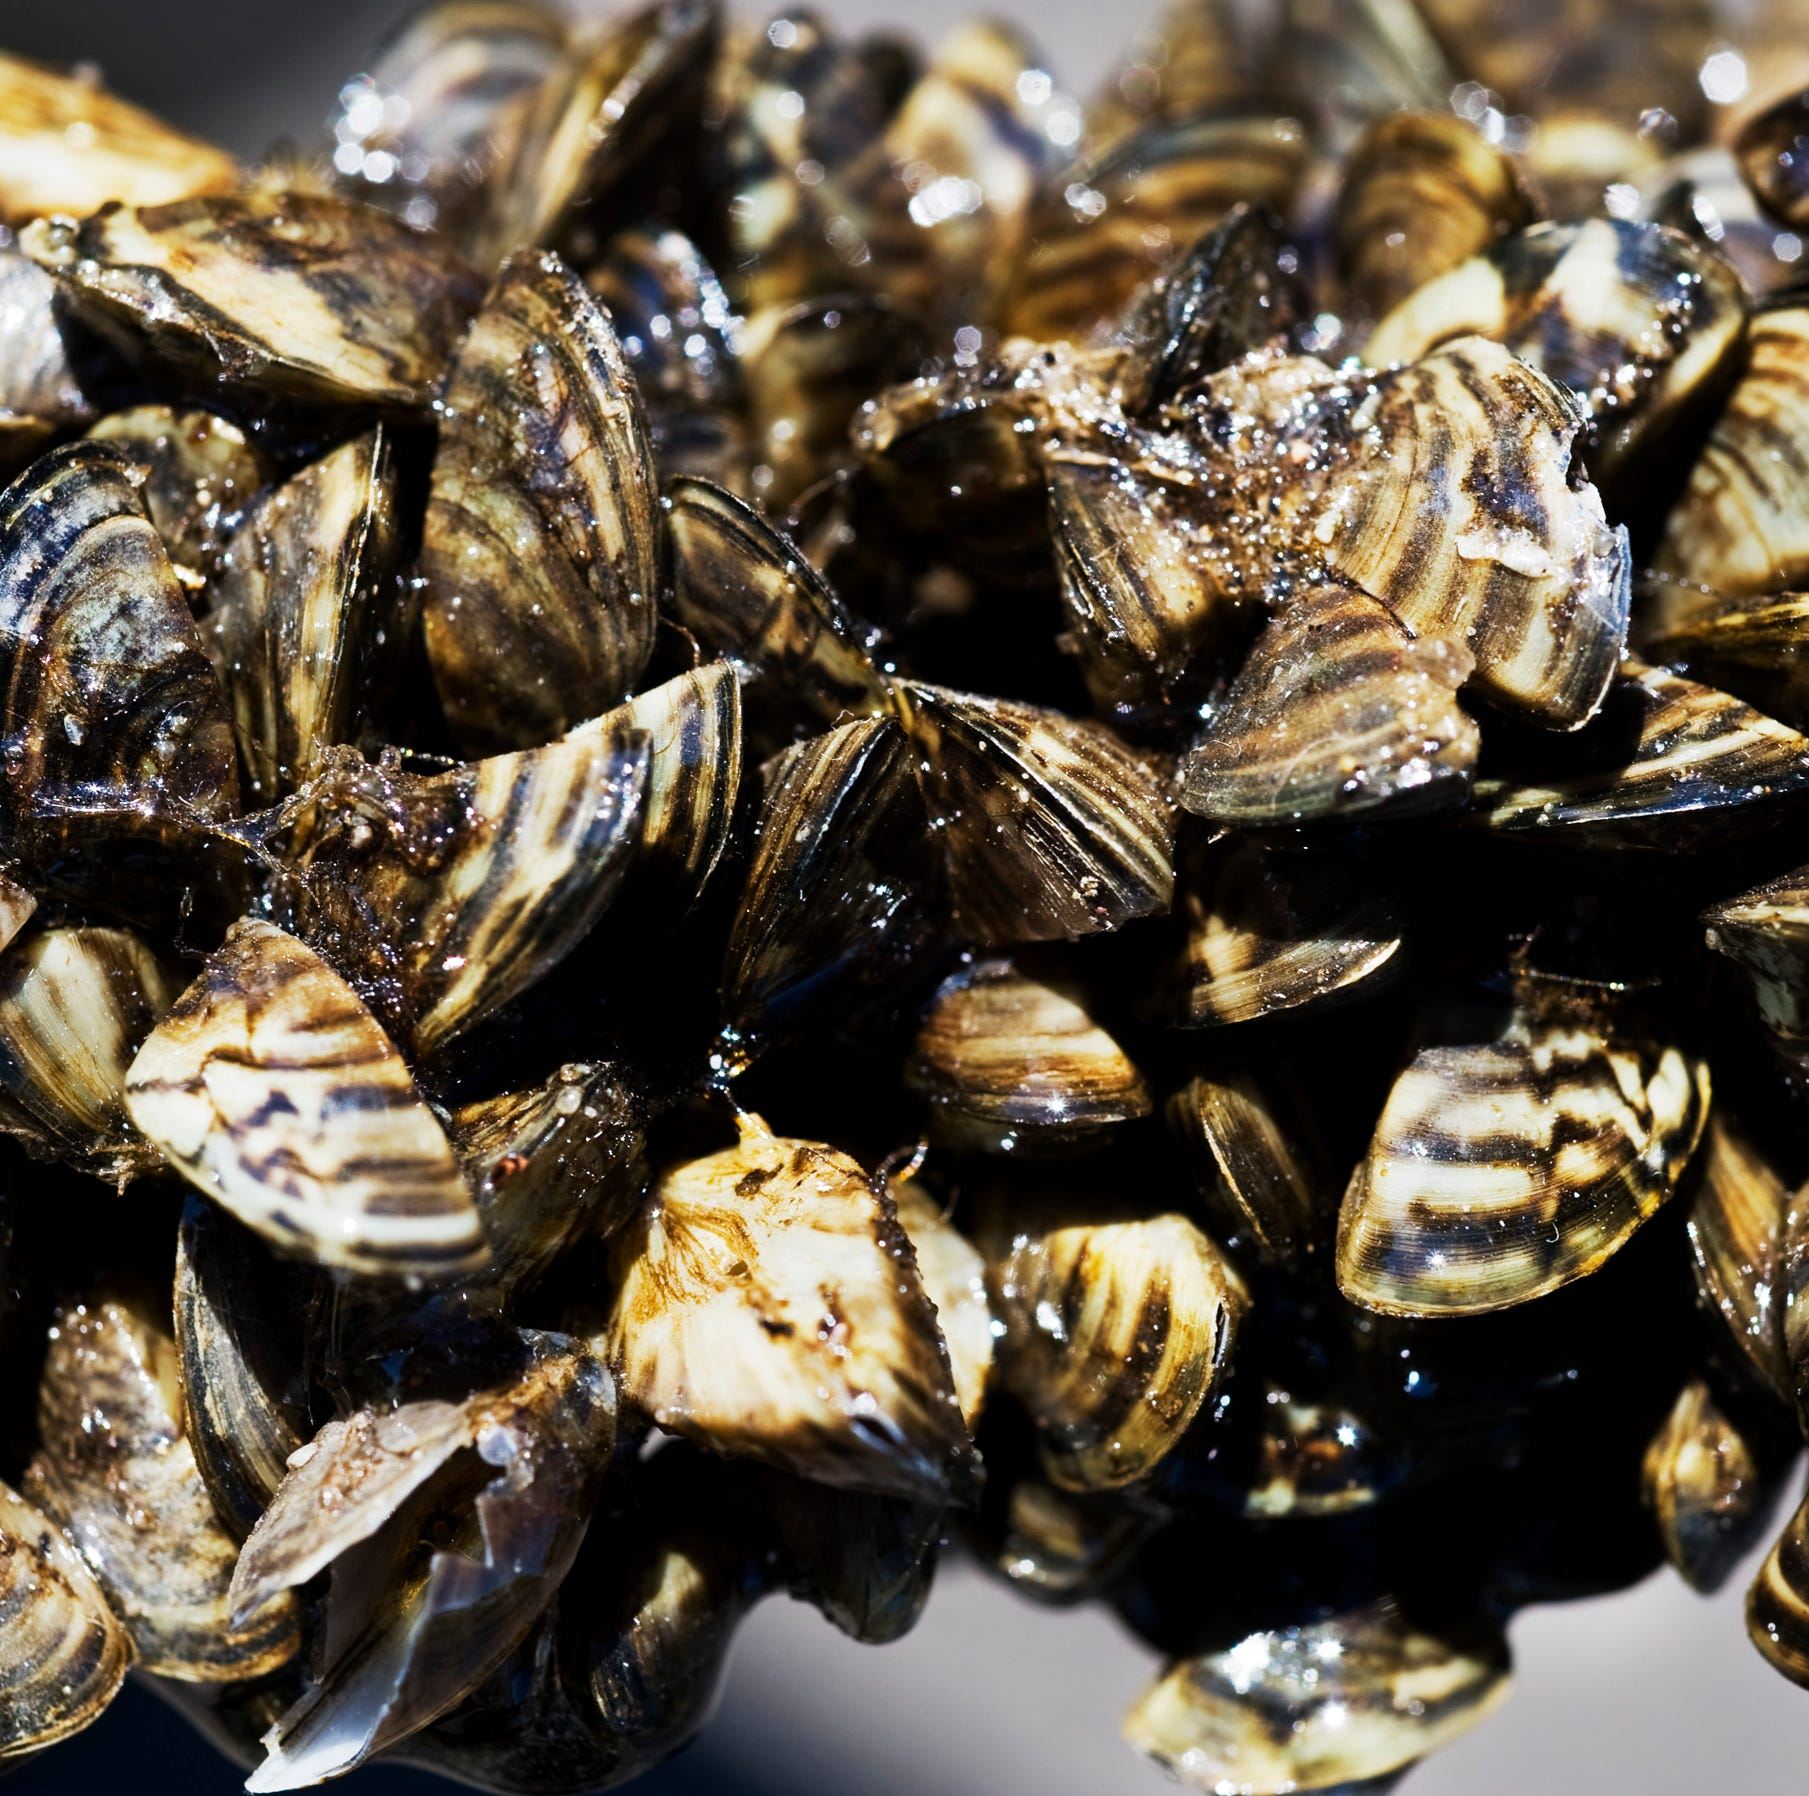 Zebra mussels invading Texas city pipes are making water smell like 'rotten trash'